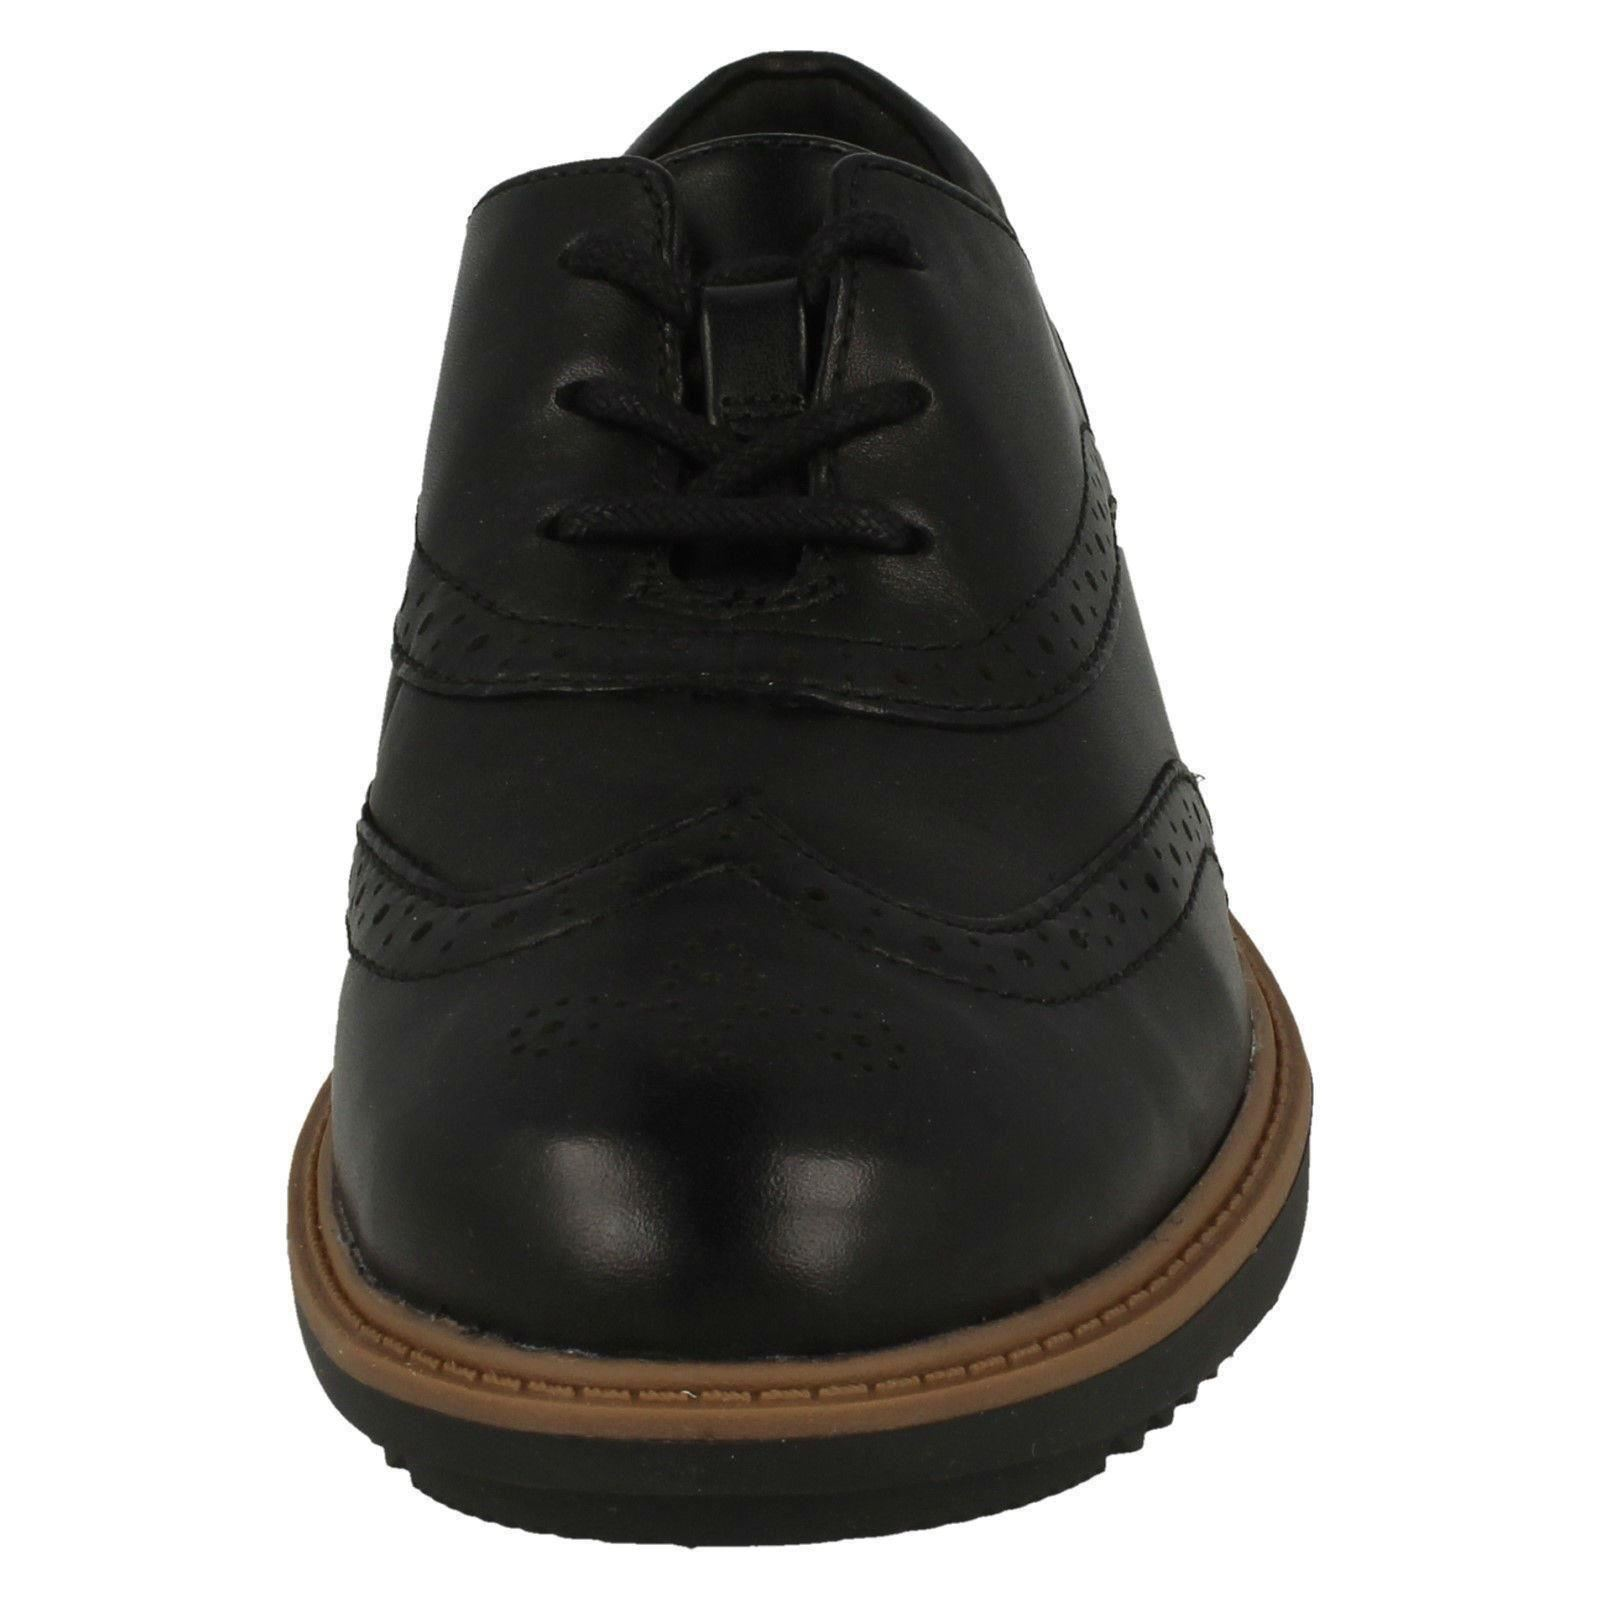 Womens Clarks Lace Up Brogue Style Shoes Raisie Hilde